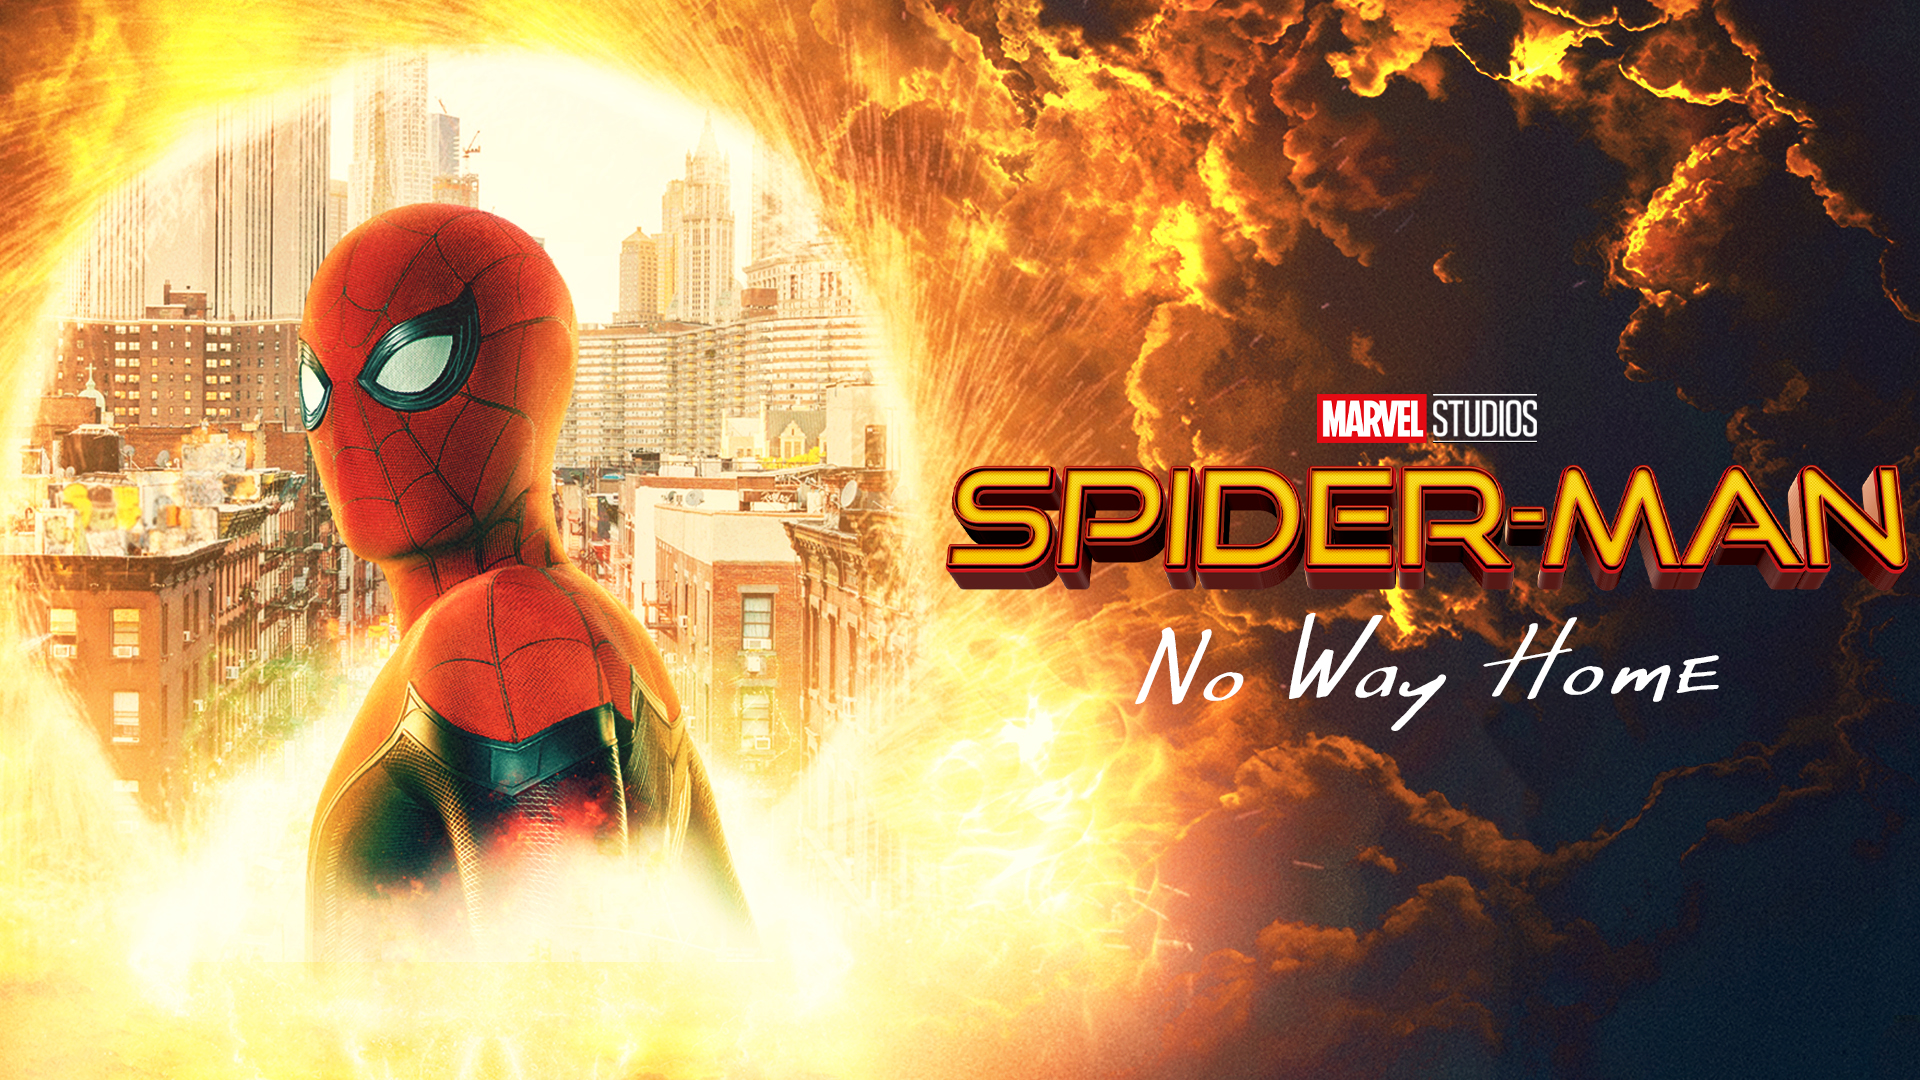 tom holland reveals spider-man 3 title